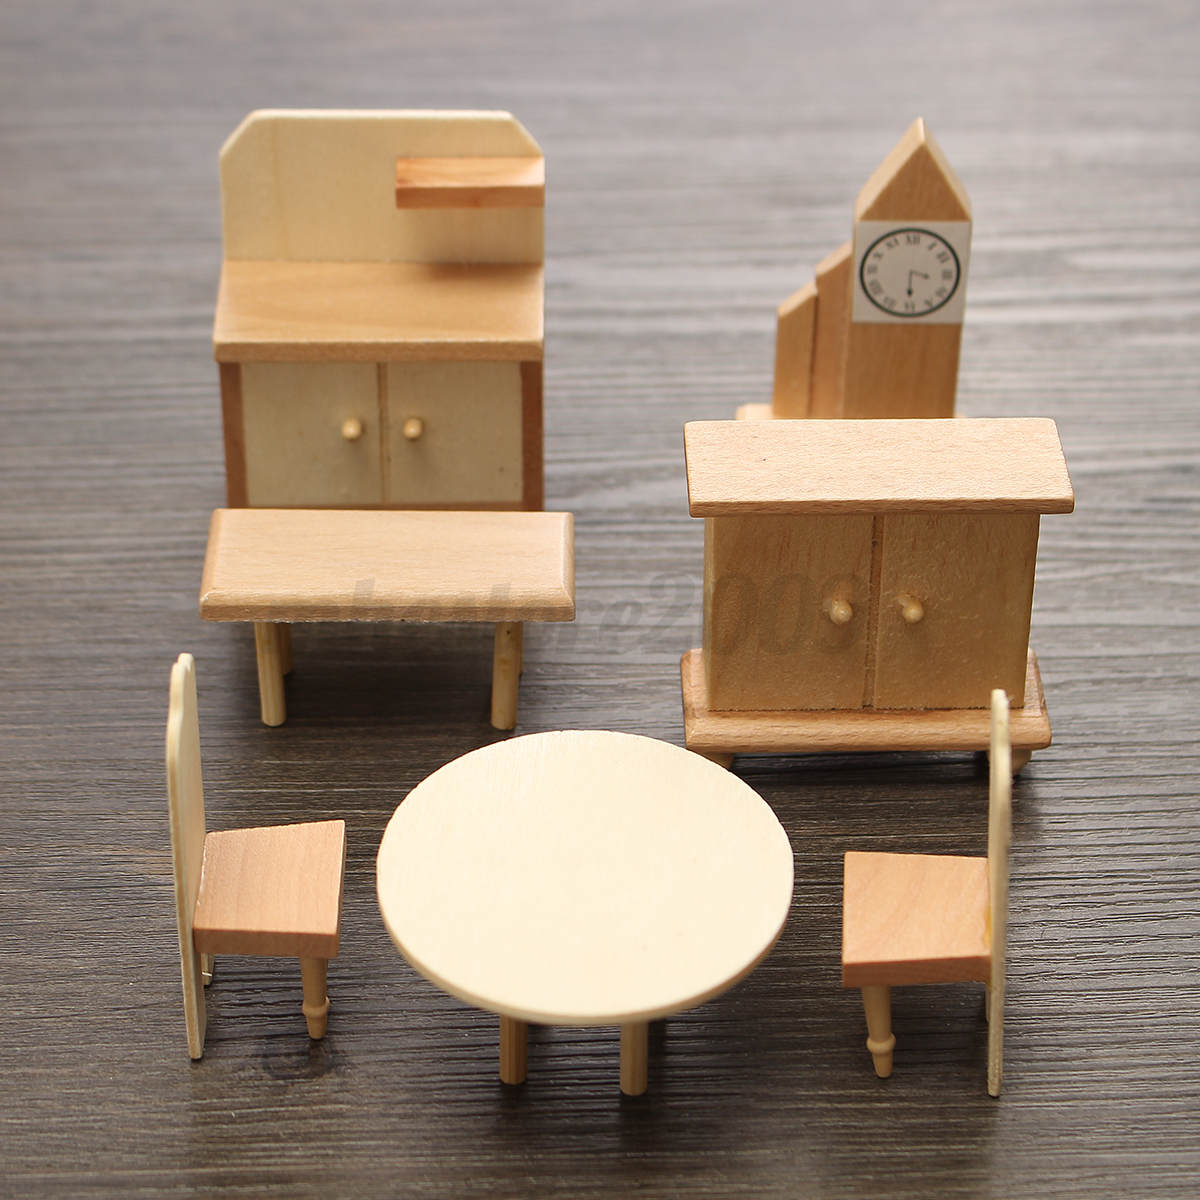 29 pcs set dollhouse miniature unpainted wooden furniture Scale model furniture